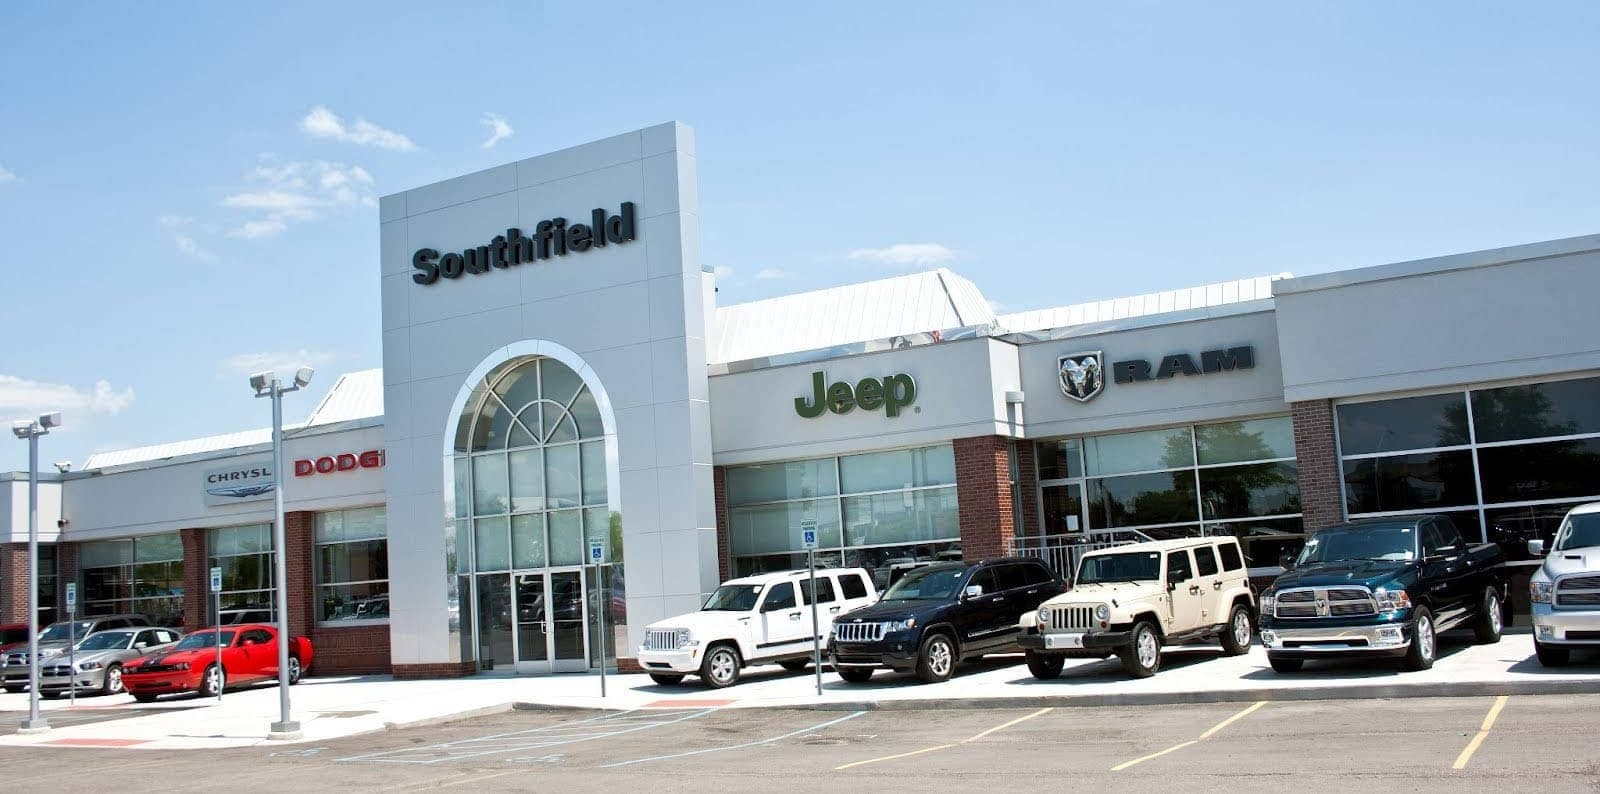 CDJR And Used Car Dealer In Southfield Southfield Chrysler Dodge - Jeep chrysler dealerships